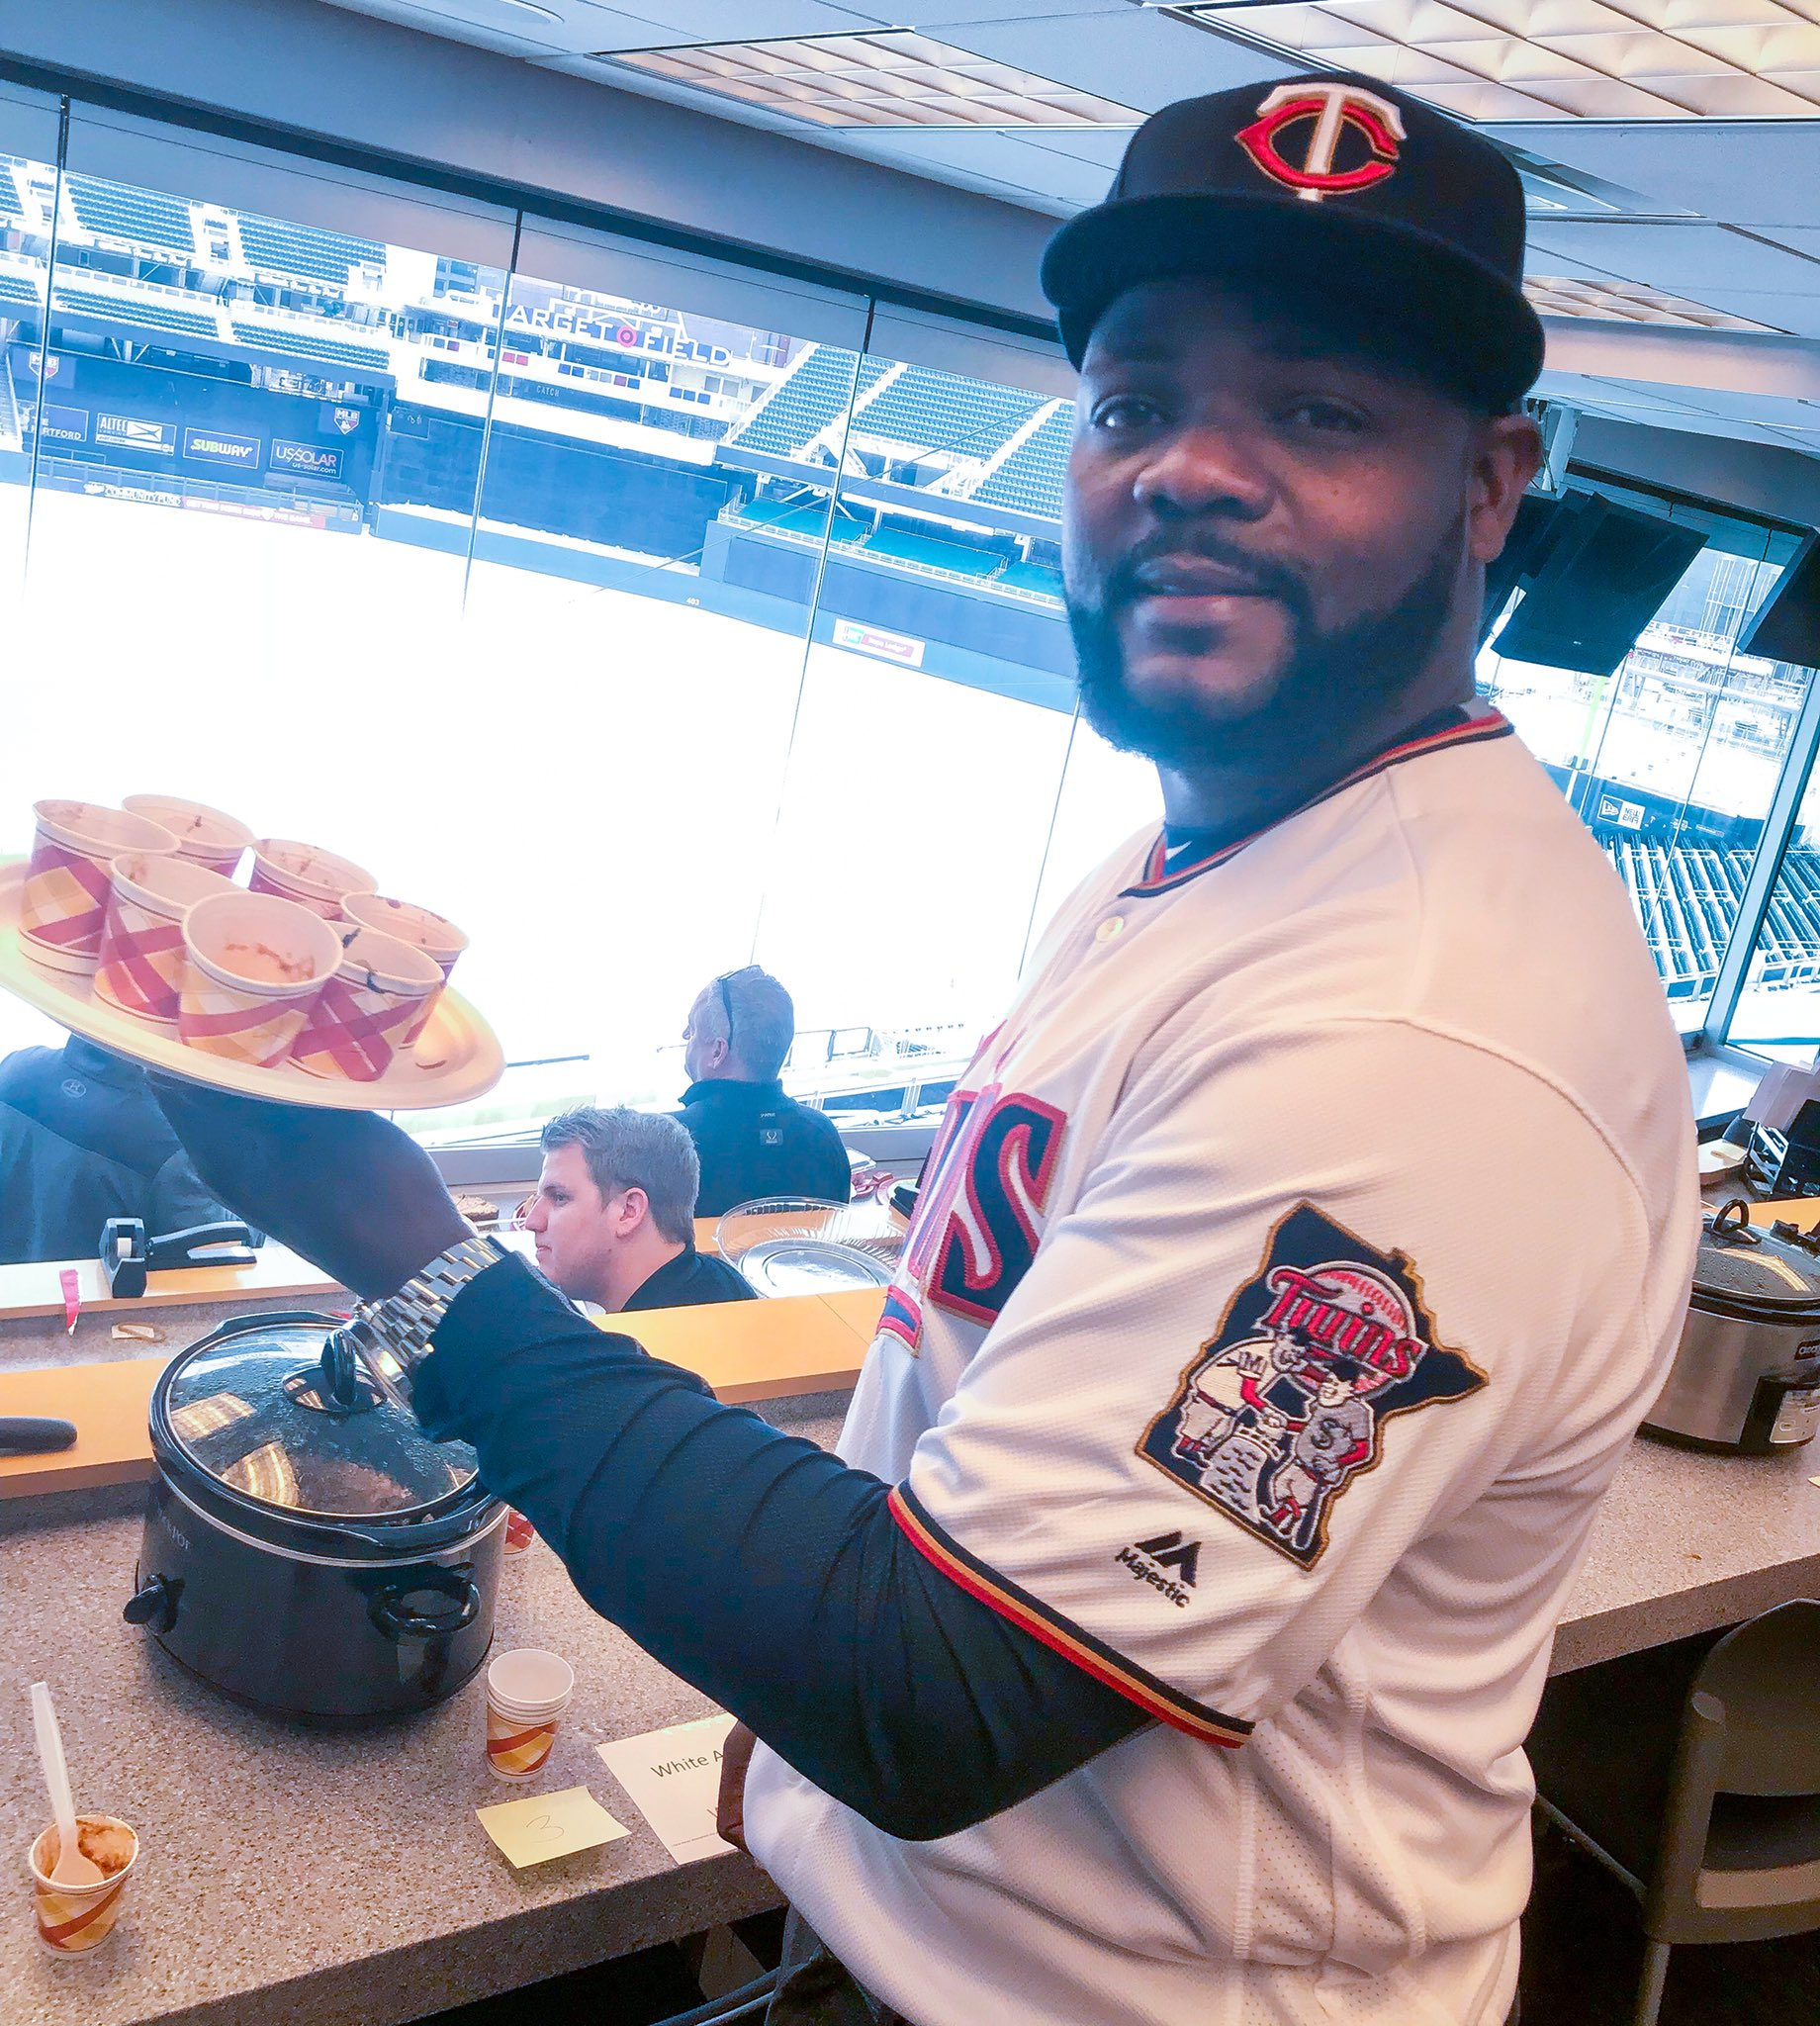 First day on the job, @F_Rodney56 judges the office chili cook-off! #MNTwins https://t.co/fFZA6vbyuy